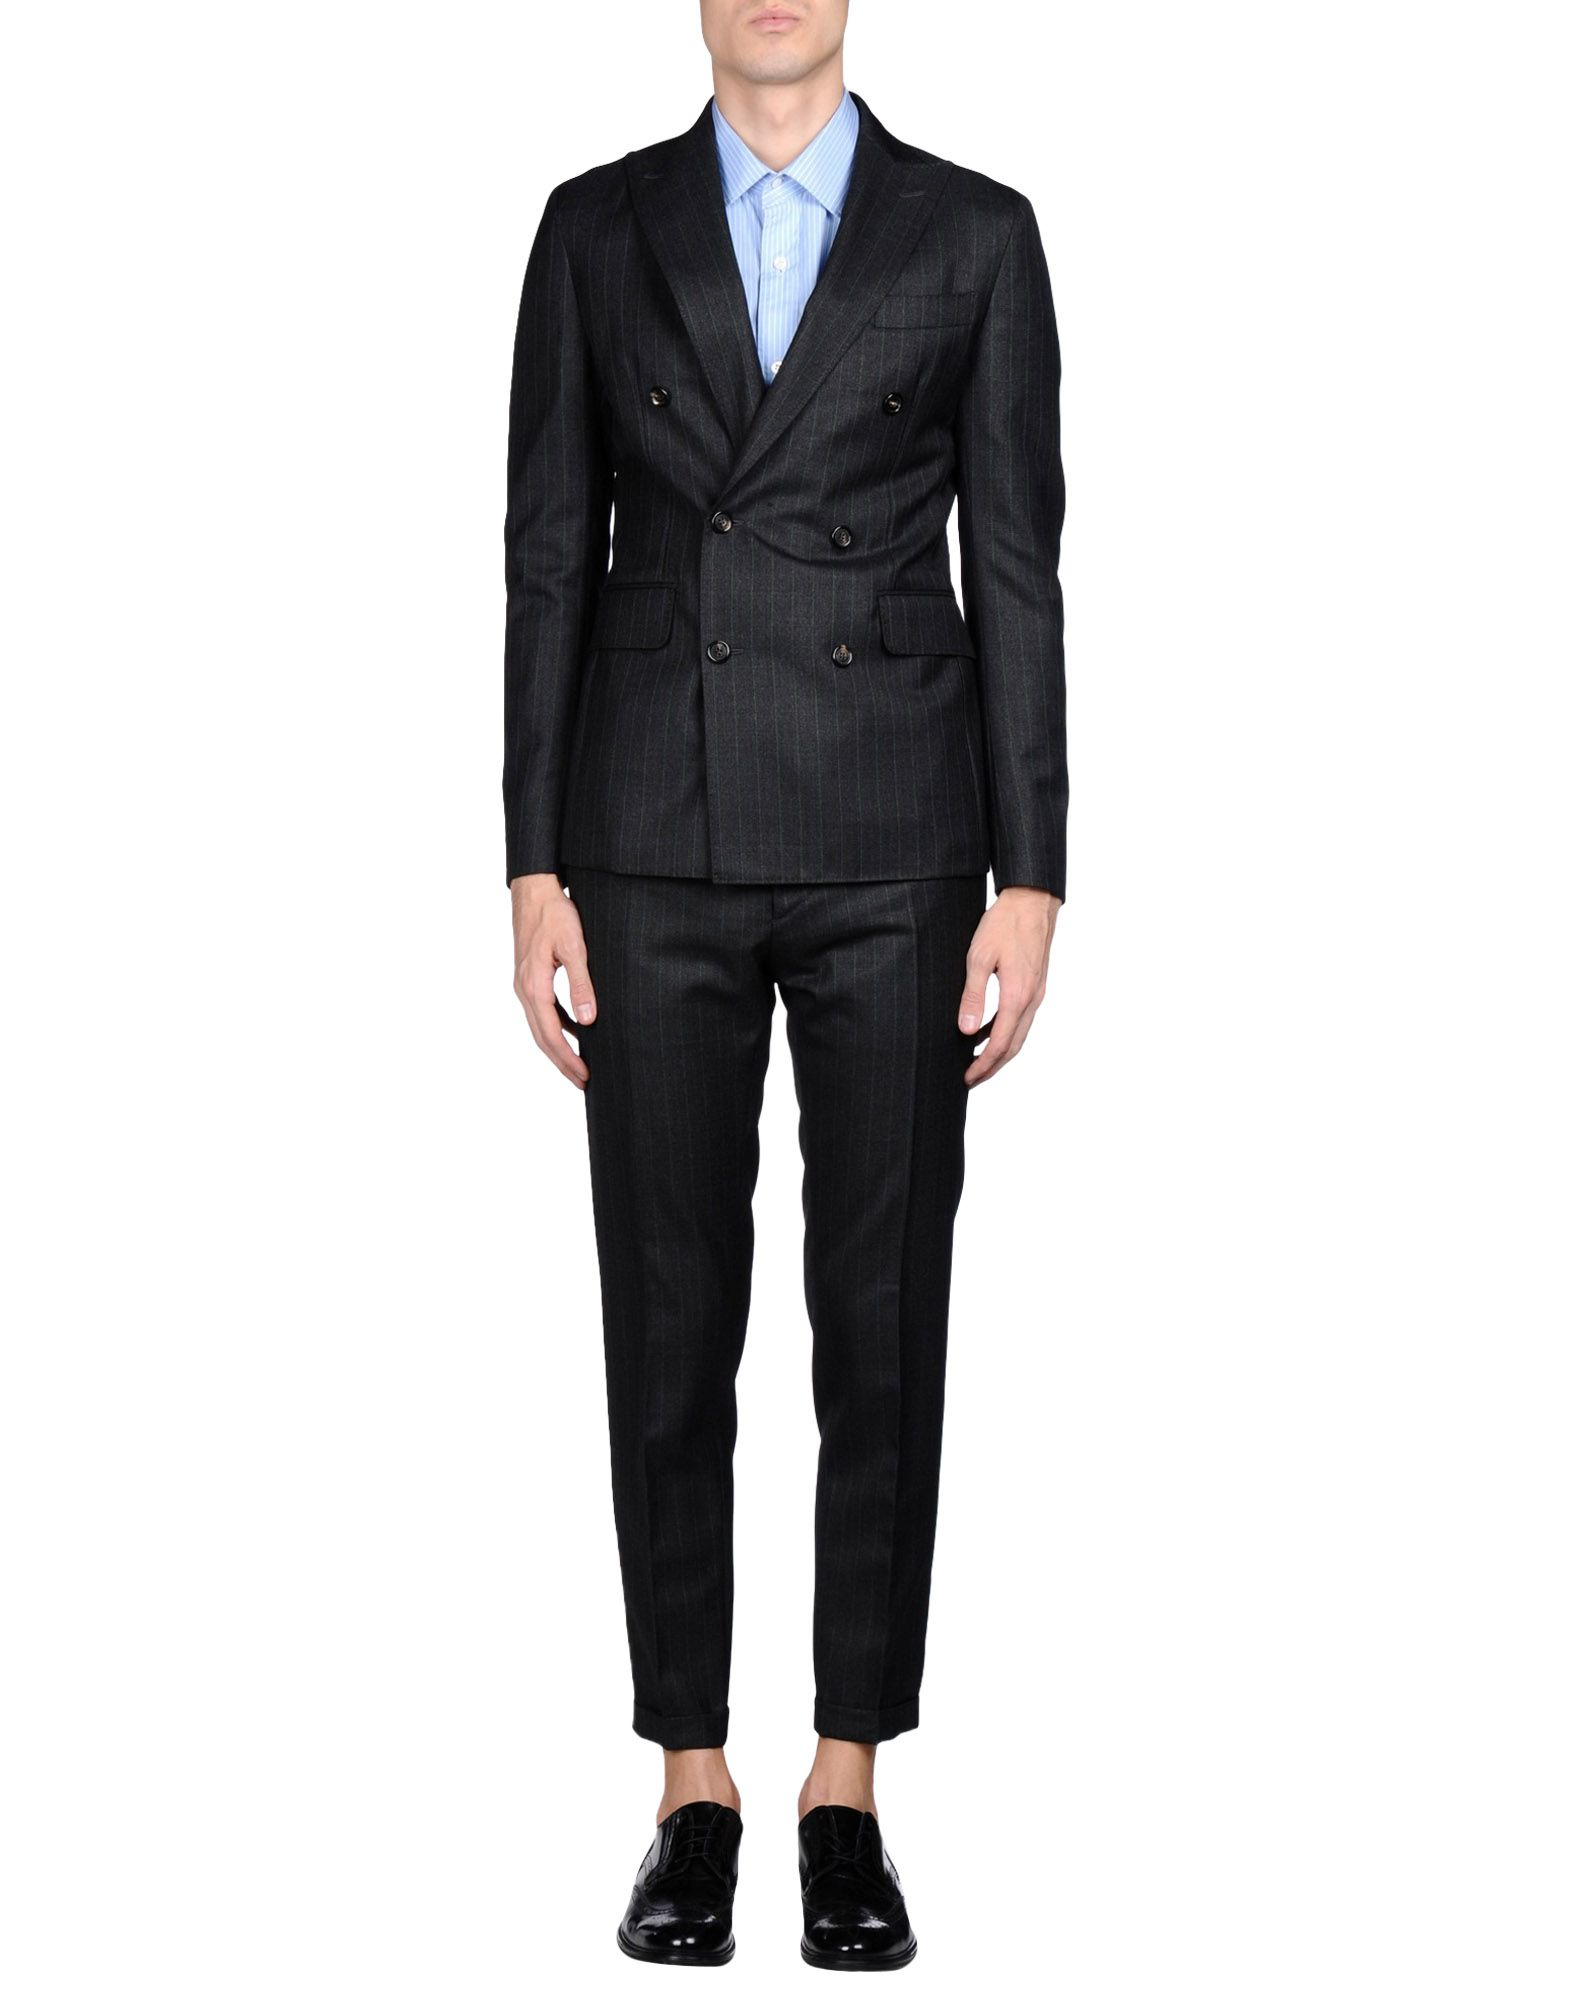 basco black single women Buy escada women's black basco speckled jacket, starting at £385 similar products also available sale now on.